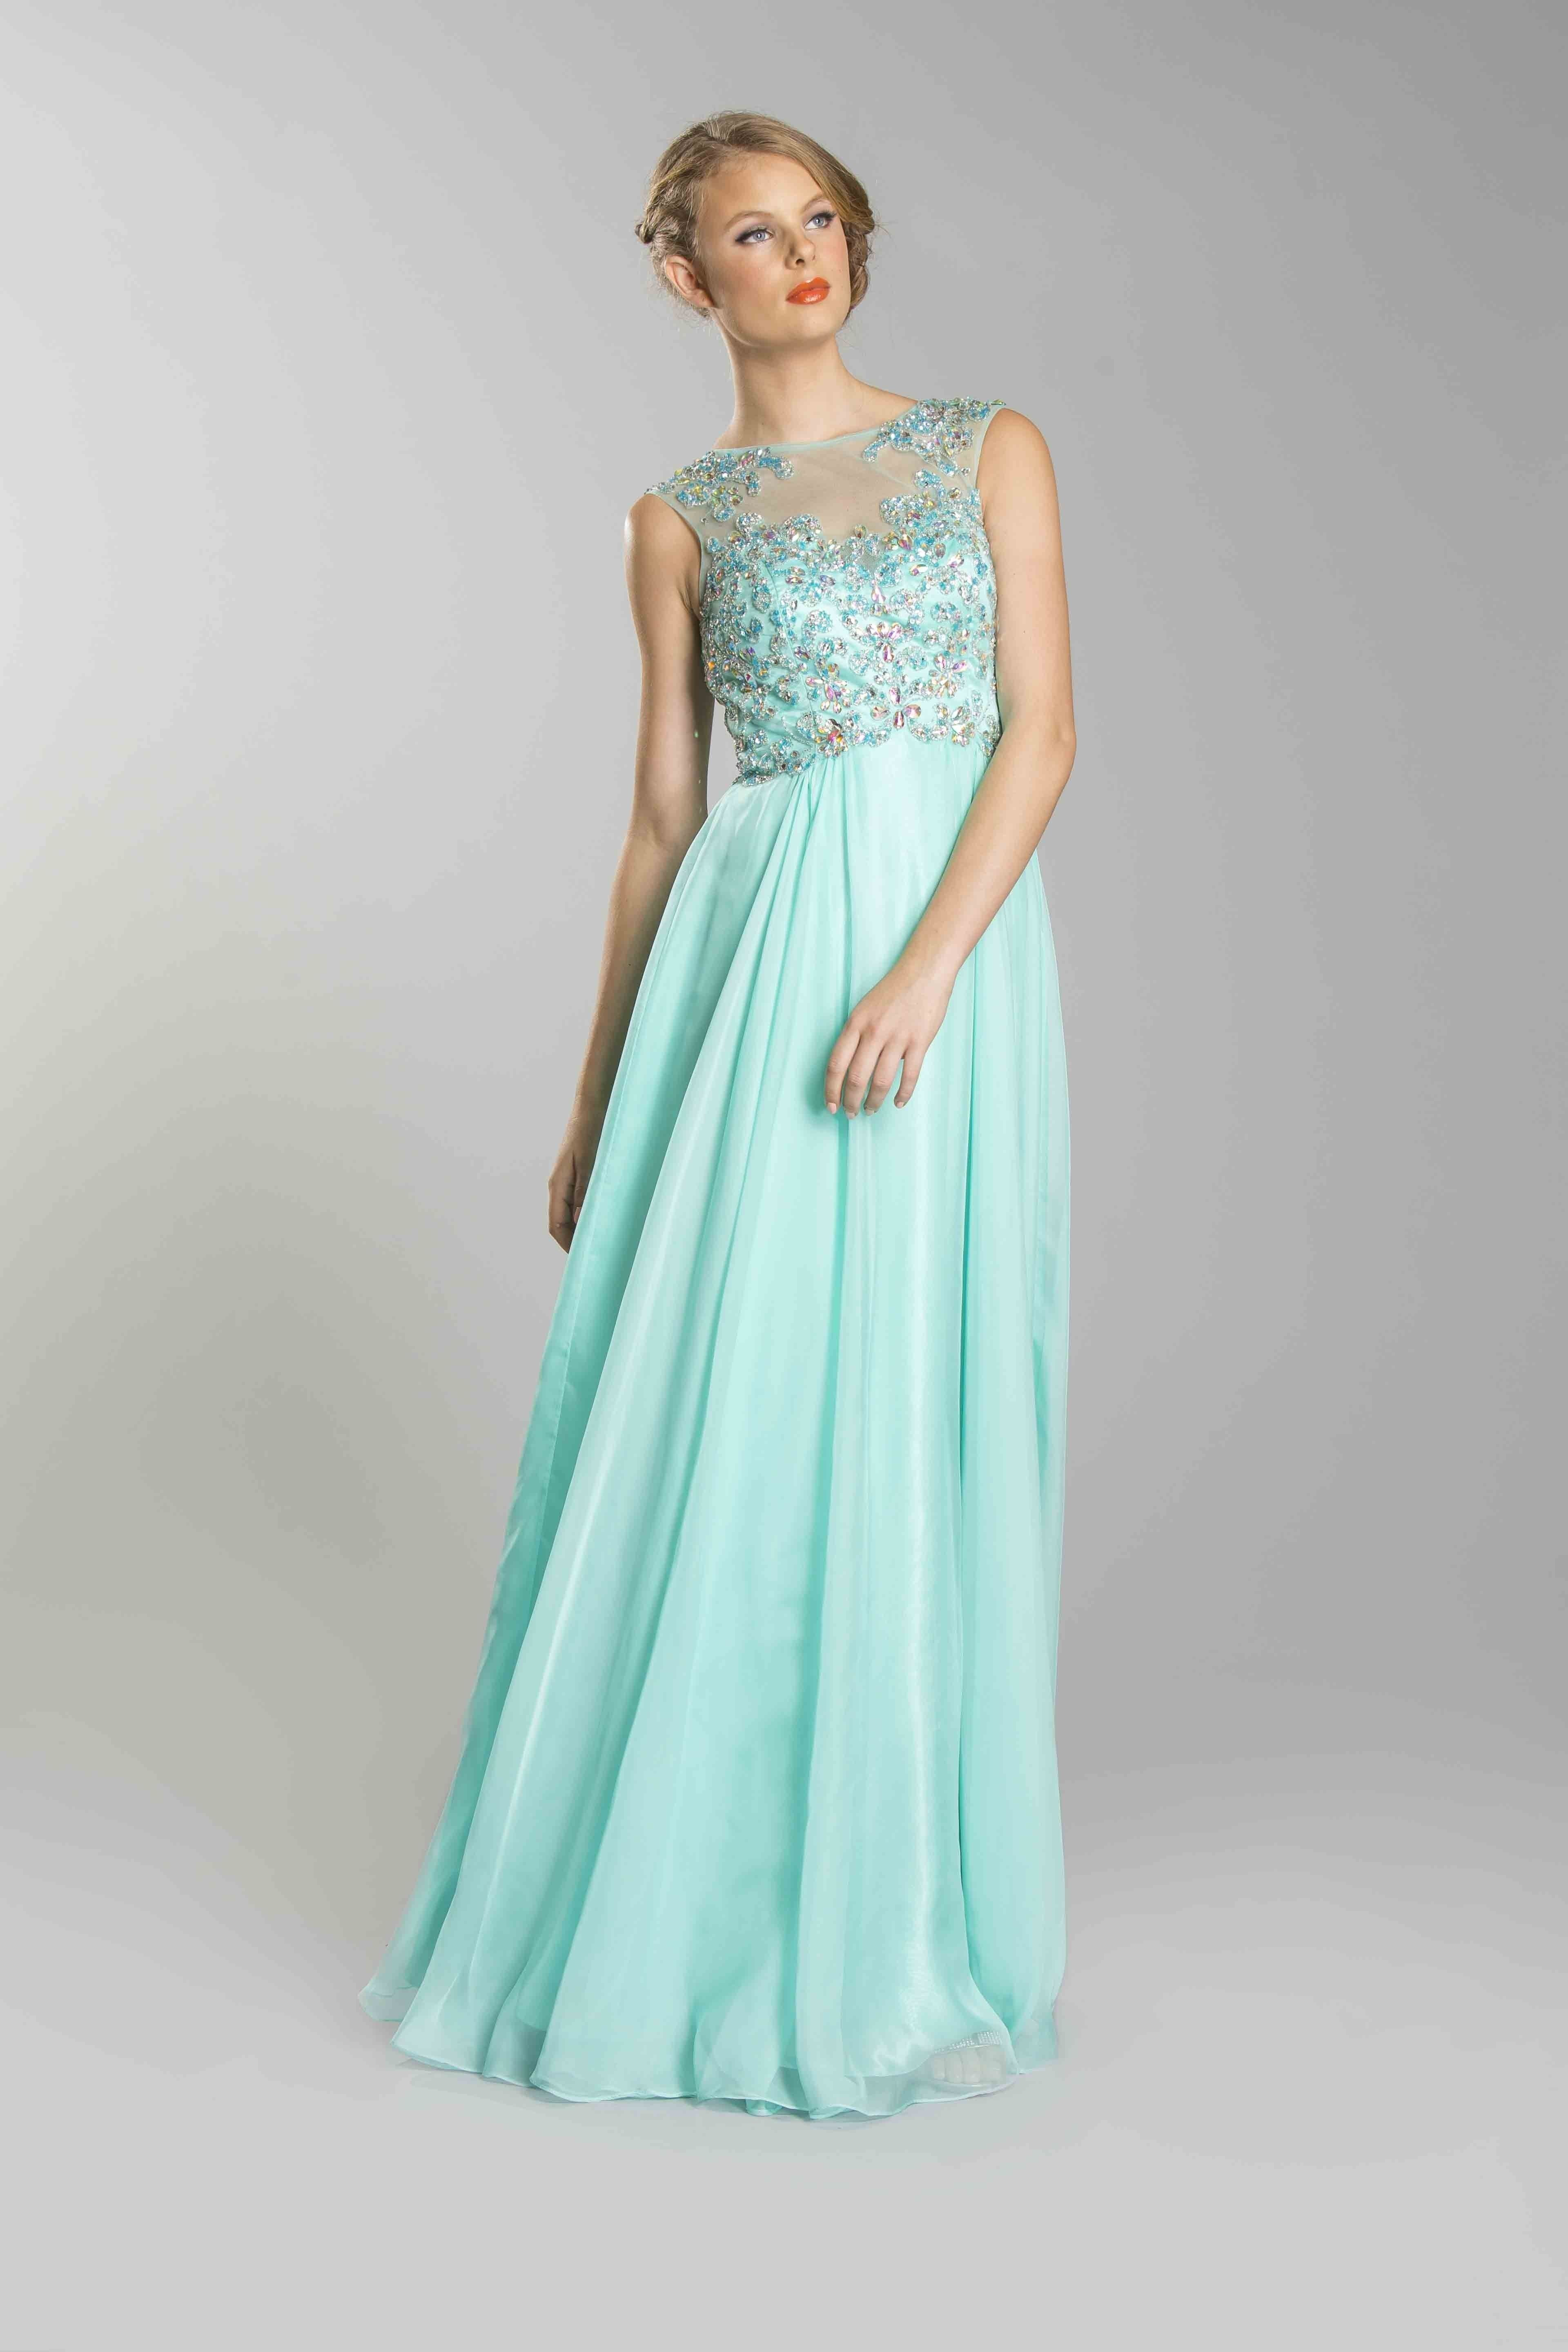 COYL1273MT MINT Beaded Strapped Boat Neck Long Sexy Prom Dresses ...